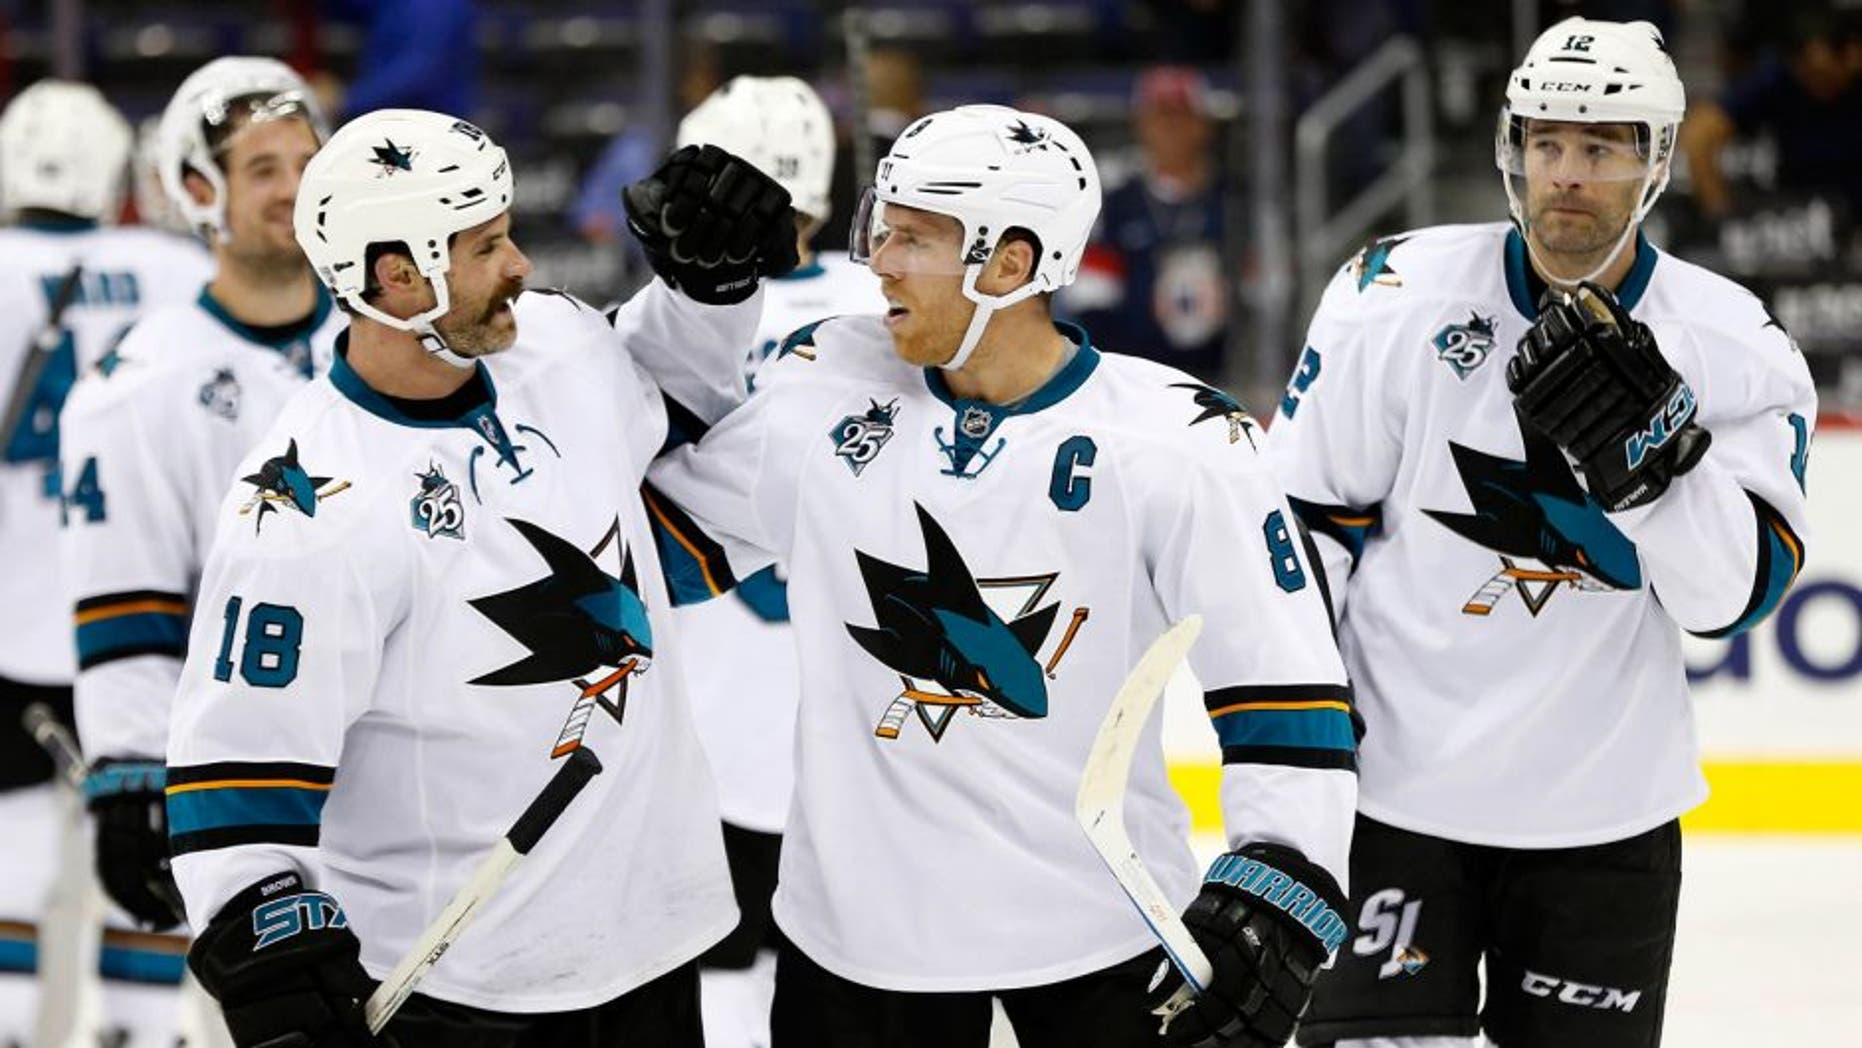 Oct 13, 2015; Washington, DC, USA; San Jose Sharks right wing Mike Brown (18) celebrates with Sharks center Joe Pavelski (8) after their game against the Washington Capitals at Verizon Center. The Sharks won 5-0. Mandatory Credit: Geoff Burke-USA TODAY Sports